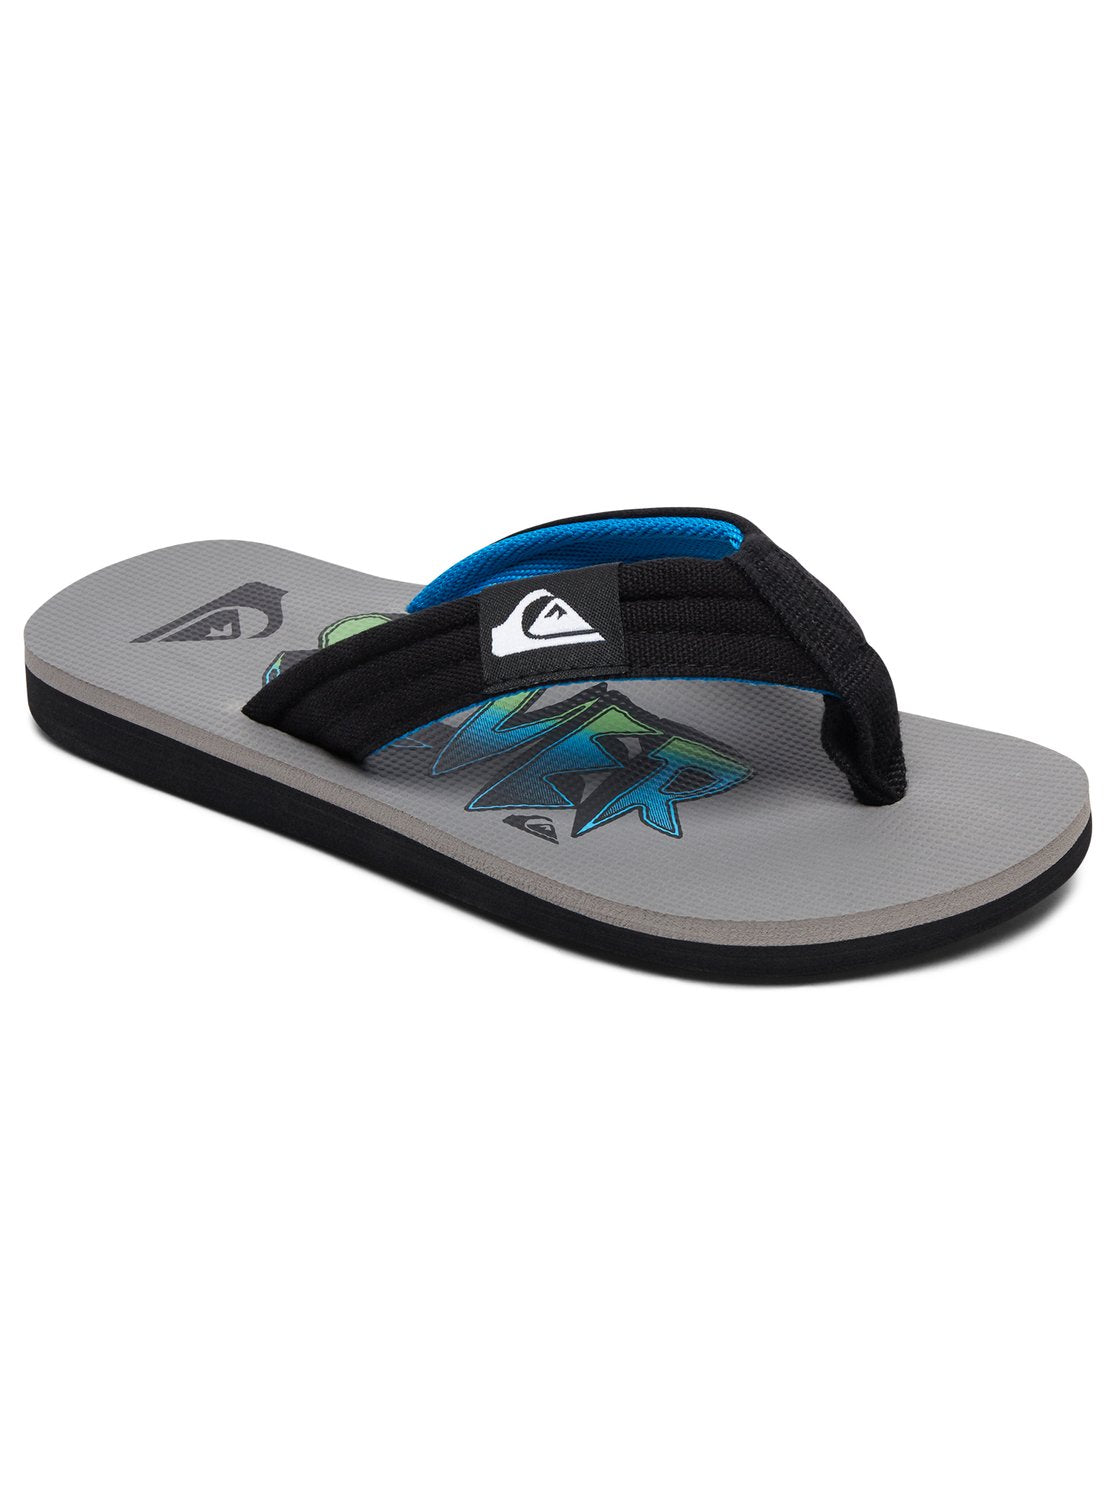 Quiksilver Boys Molokai Layback Youth Sandals In Black/Blue/Grey